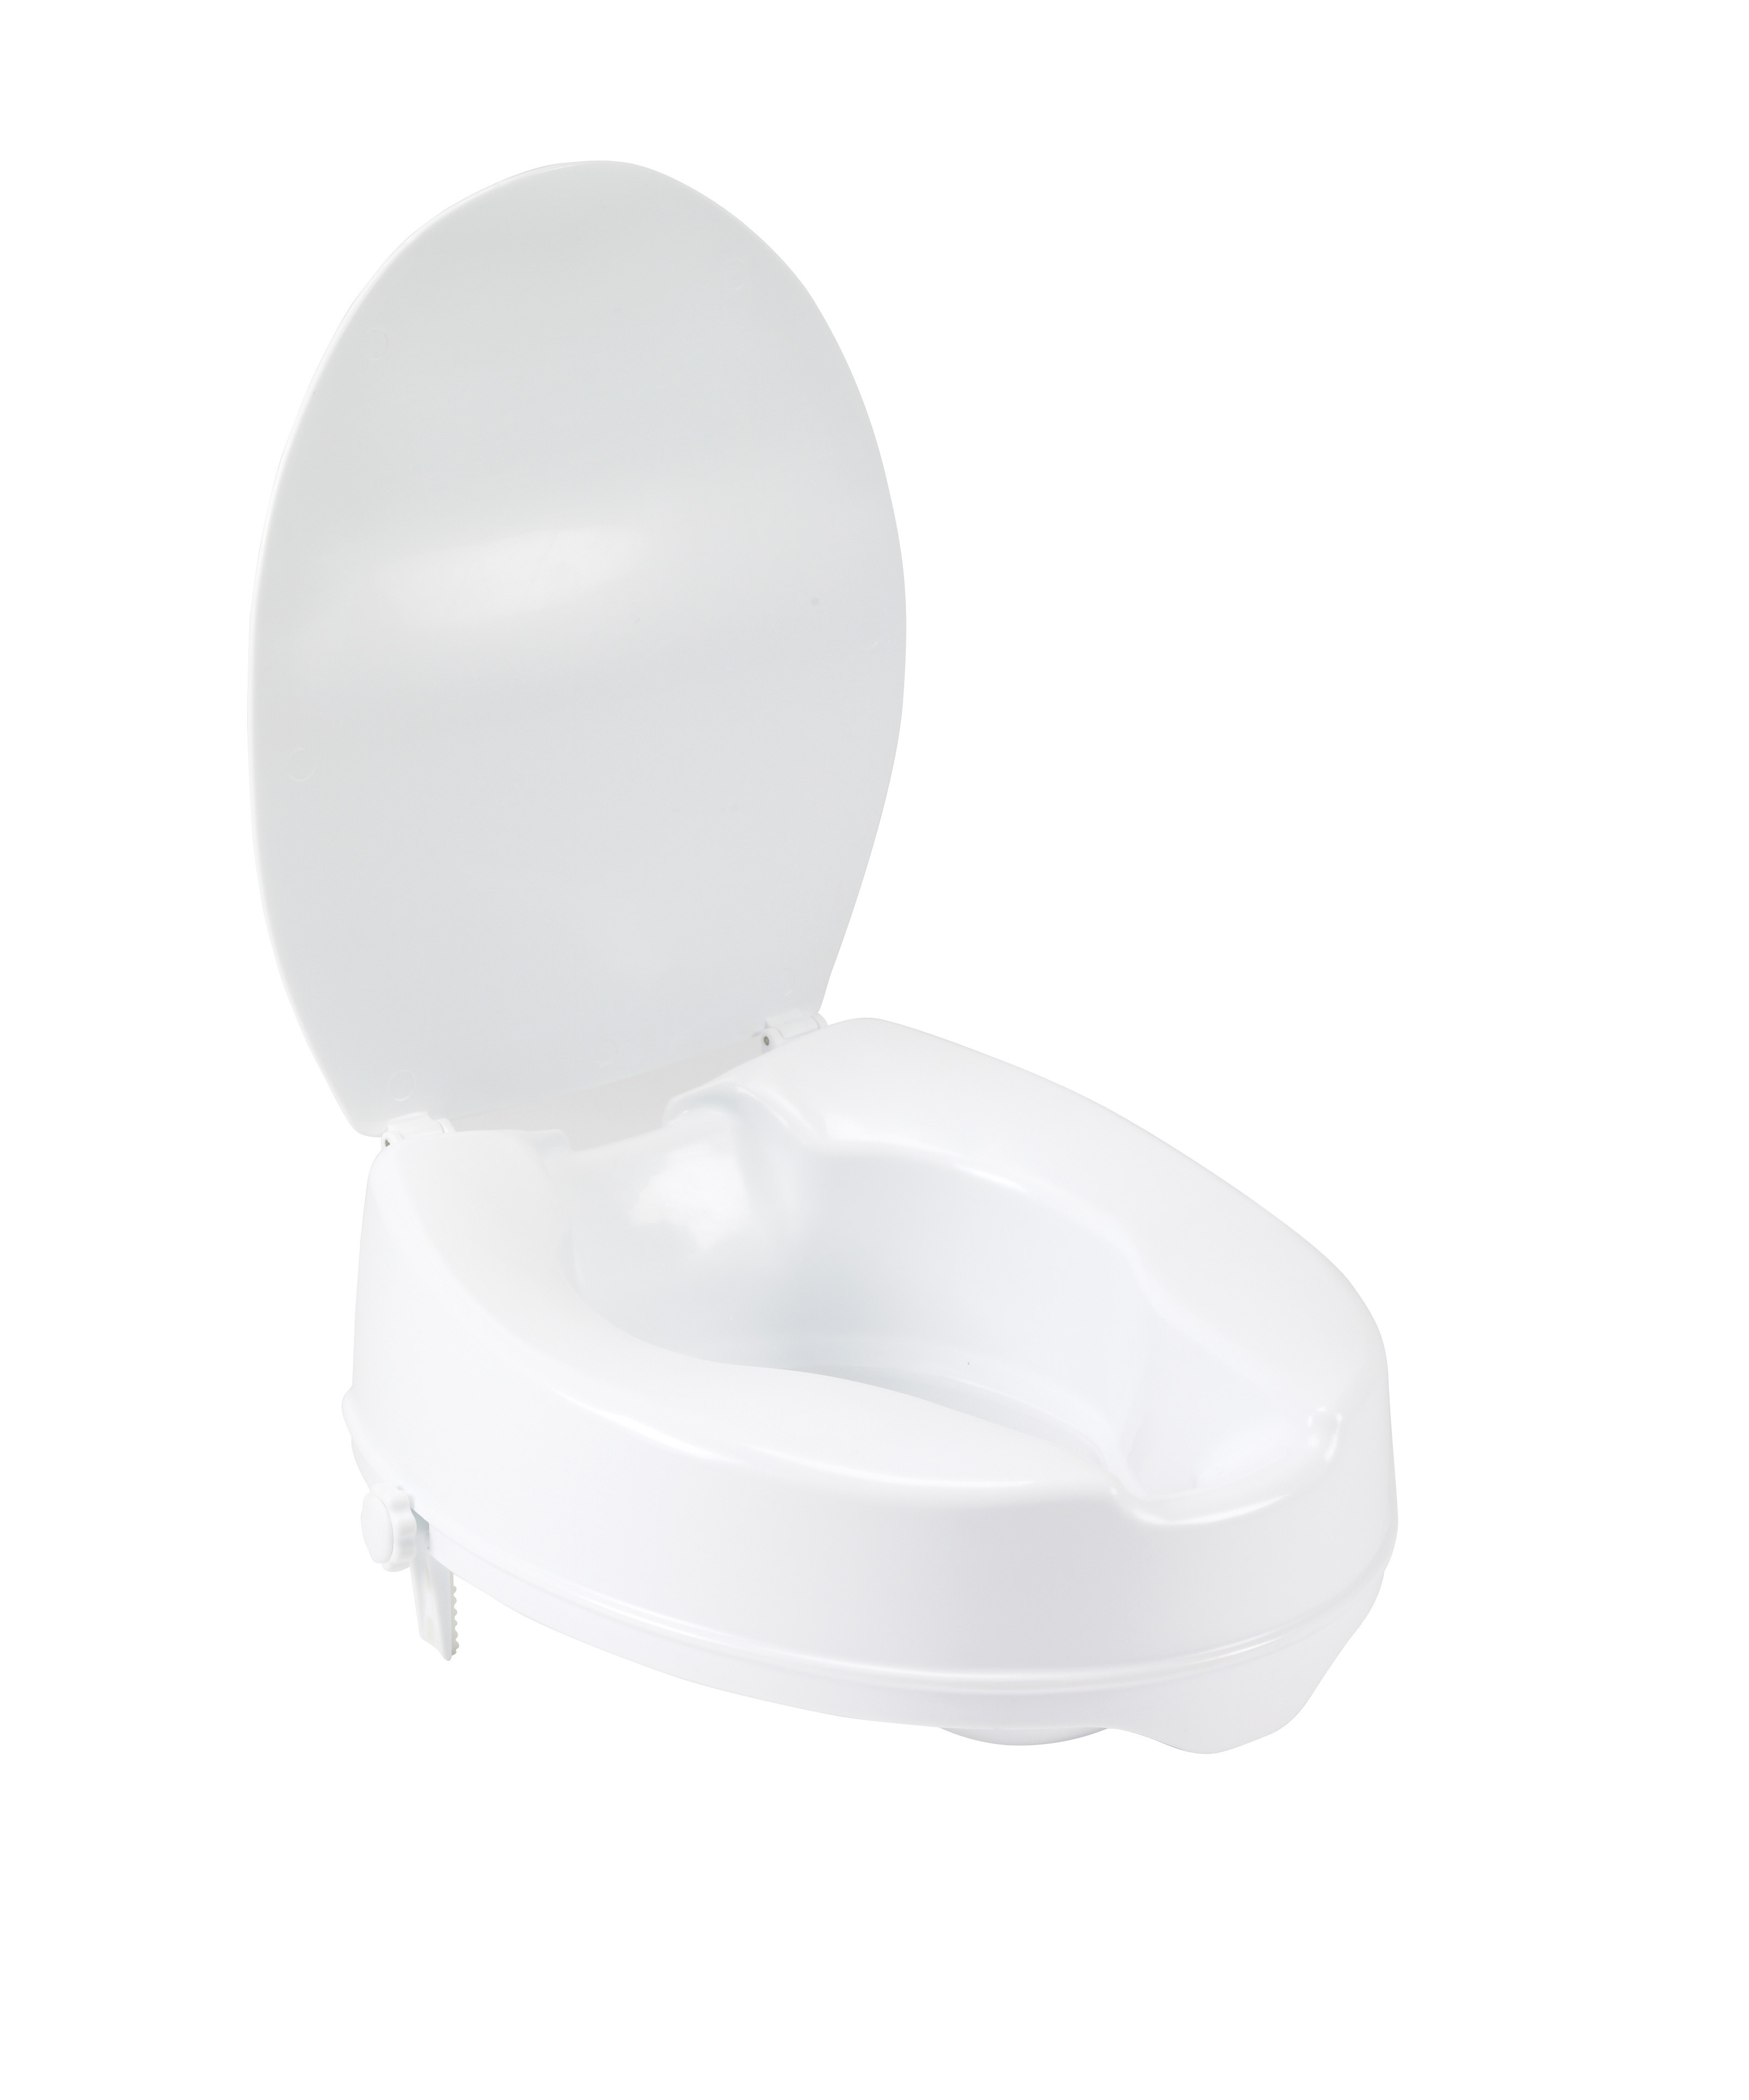 Stupendous Raised Toilet Seat With Lock And Lid 2 Open Box Special Gmtry Best Dining Table And Chair Ideas Images Gmtryco